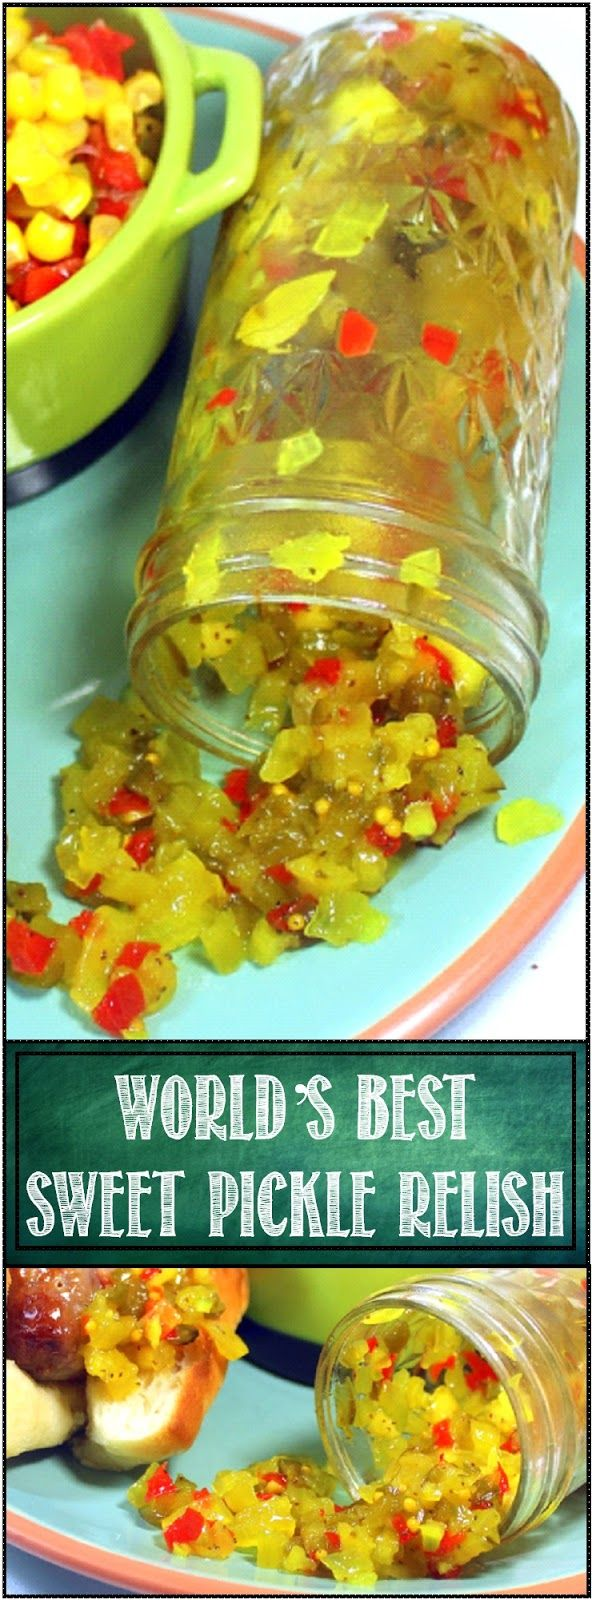 WORLD's BEST Sweet Pickle Relish! - 52 Small Batch Canning Ideas!  This is such a delight, one bite and you'll have to make more so you have a year round supply.  Sweet, Spicy and loaded with a mix of flavors.  Even a little crunchy texture to separate this from the average... EASY to make a great introduction to canning success!